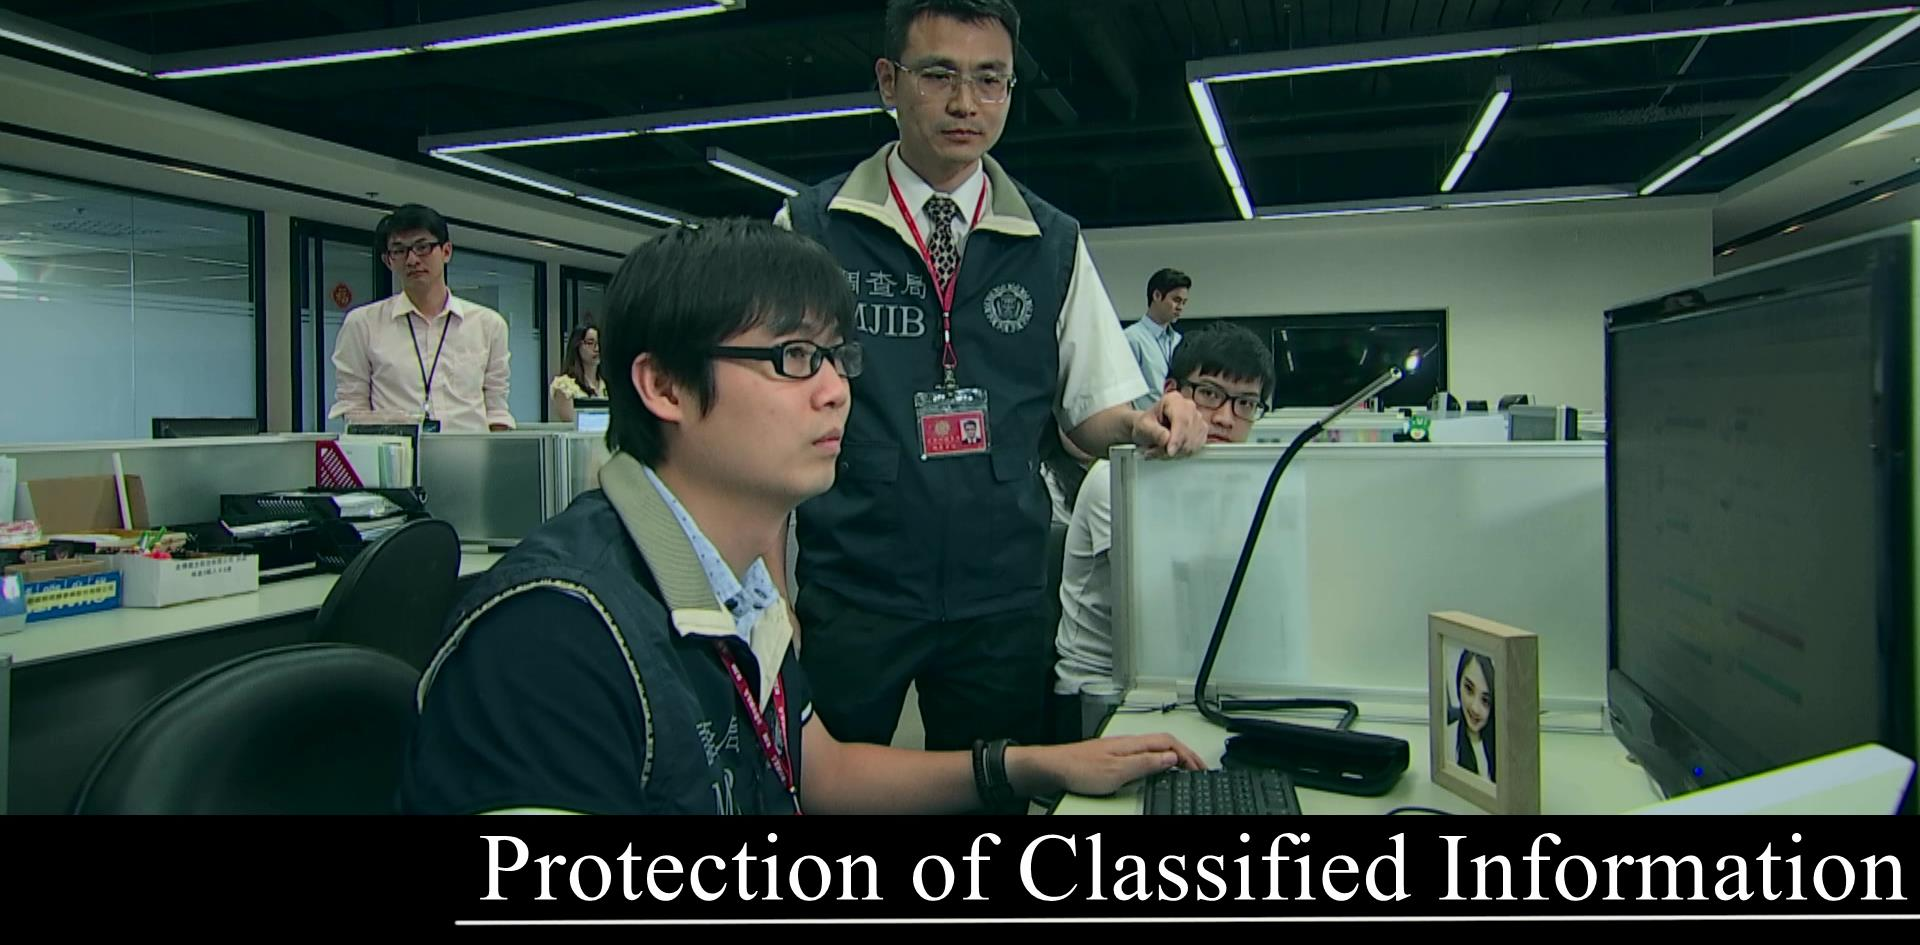 Protection of Classified Information